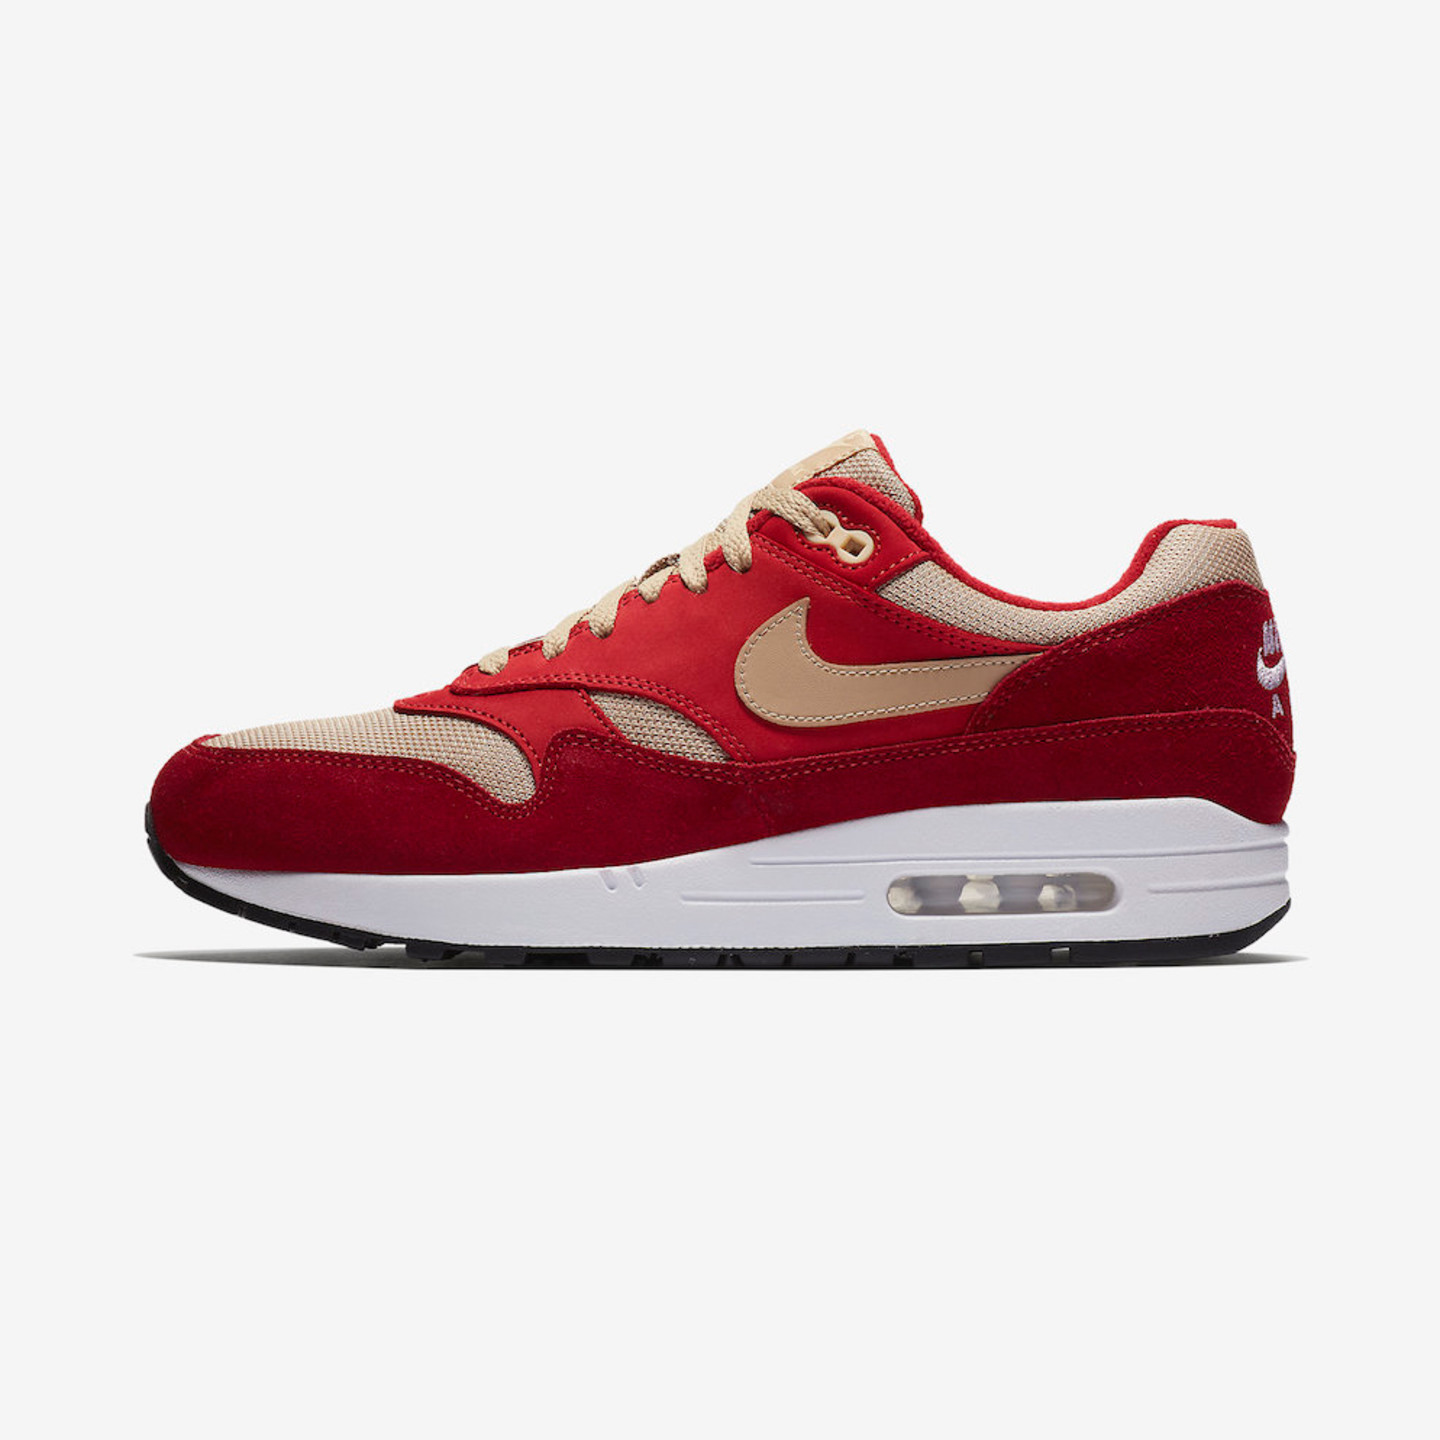 Nike Air Max 1 Premium Atmos 'Red Curry' Tough Red / Mushroom / Rush Red / Vanilla 908366-600